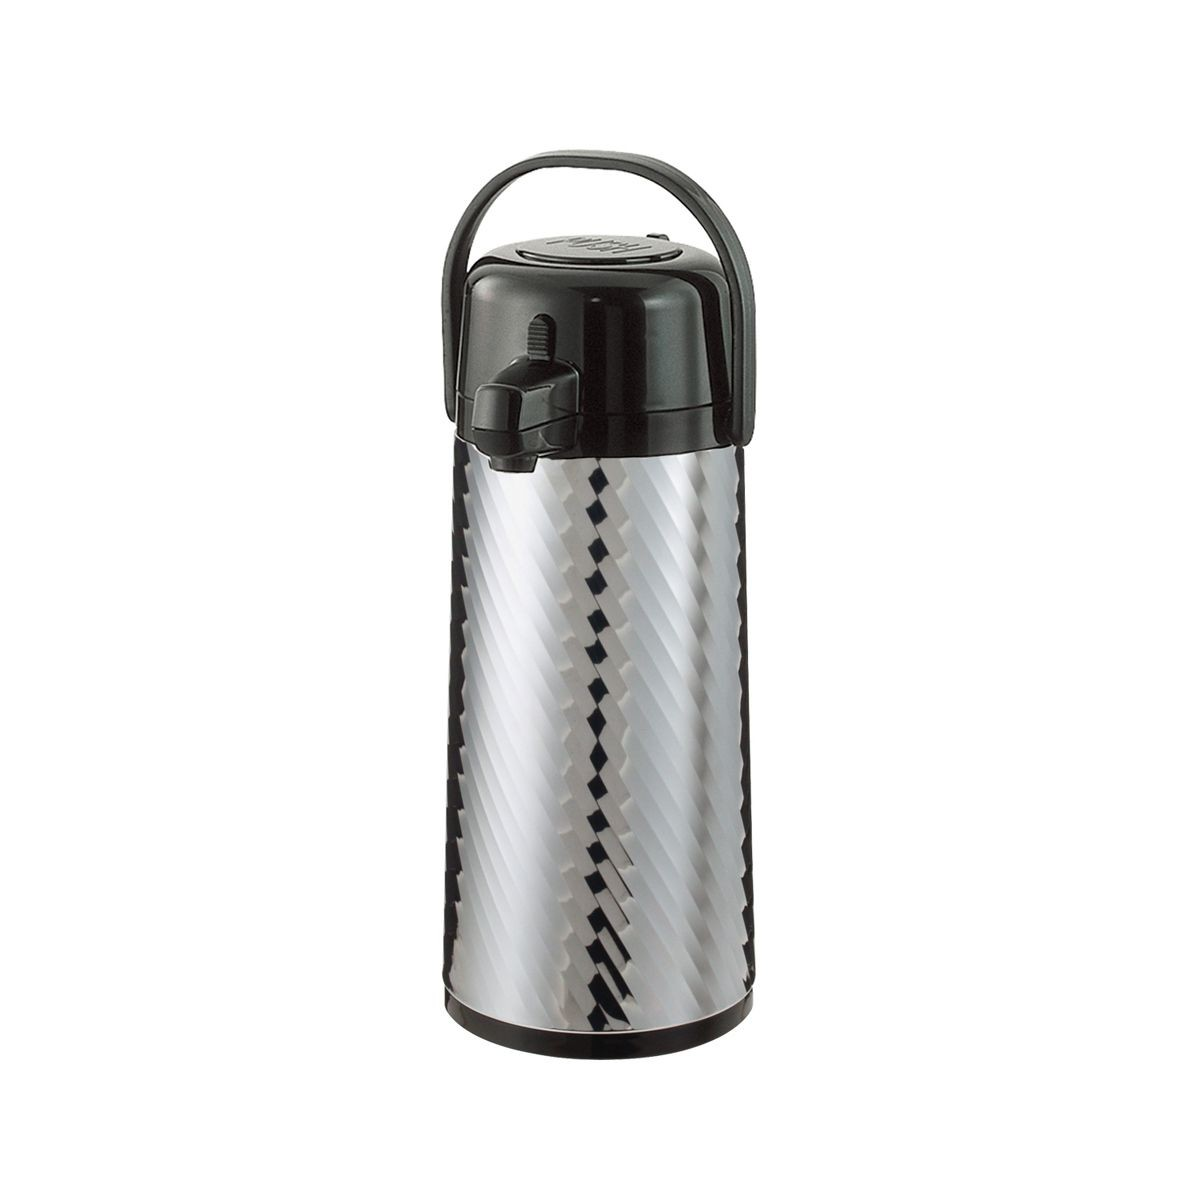 Service Ideas ECAJS22S Eco Air Jewel Shell Insulated Stainless-Lined Airpot, 2.4 Liter